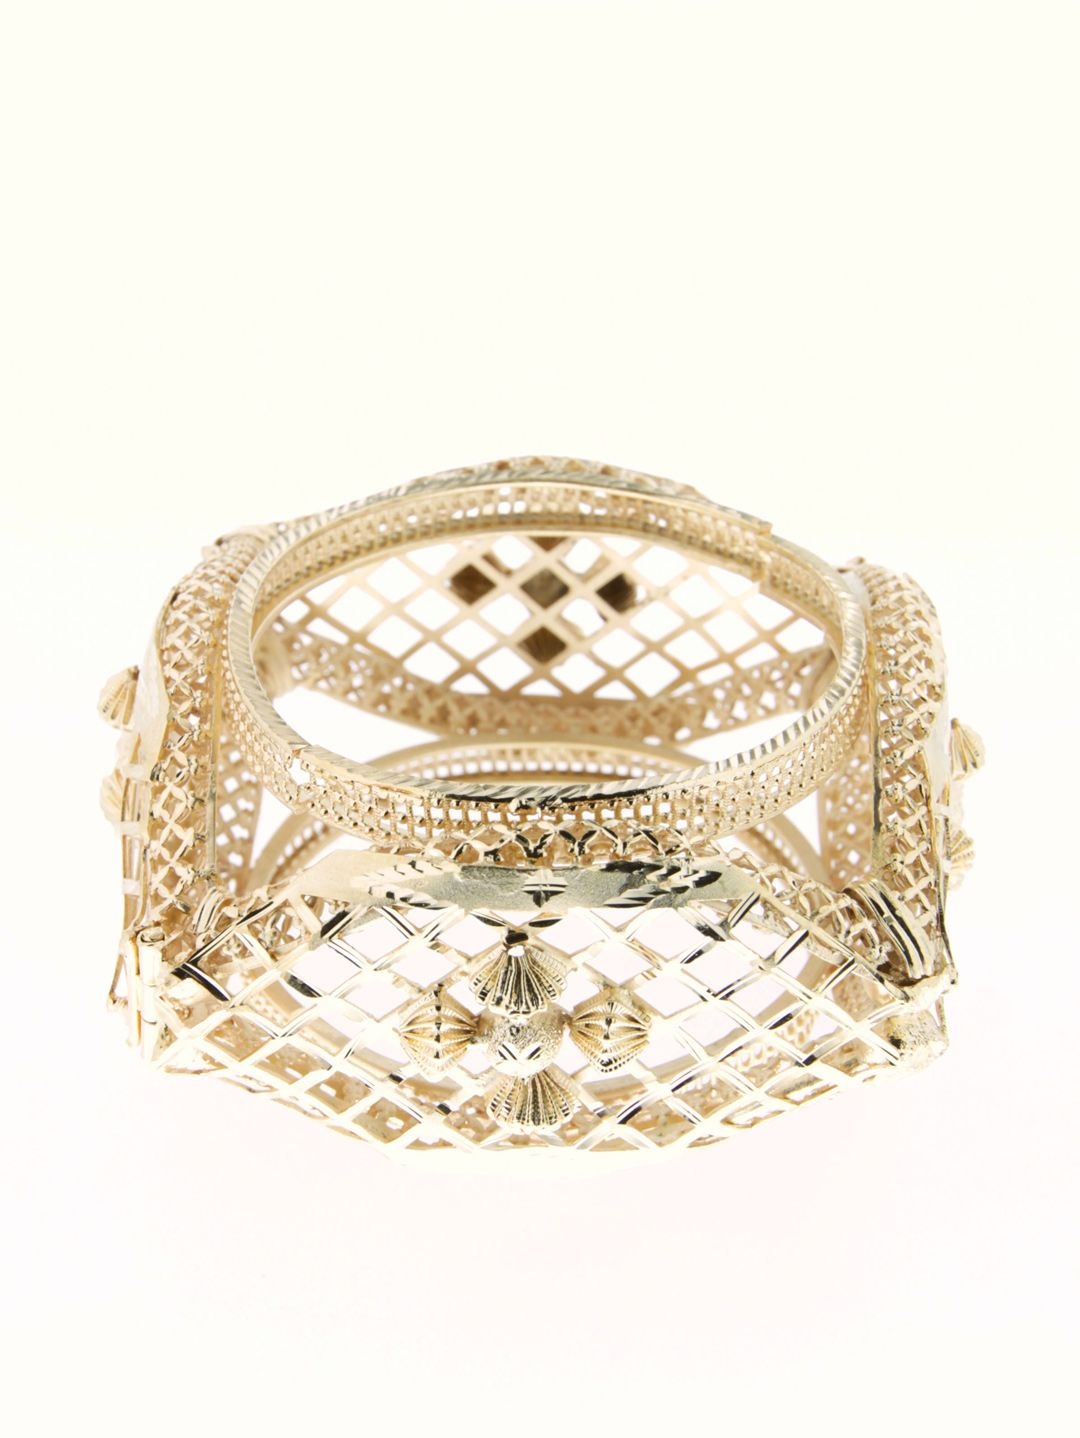 d77c96db0ea Beautiful Dahab by Bosky statement cuff bangle - $59.62 (AED 219) Sukar.com